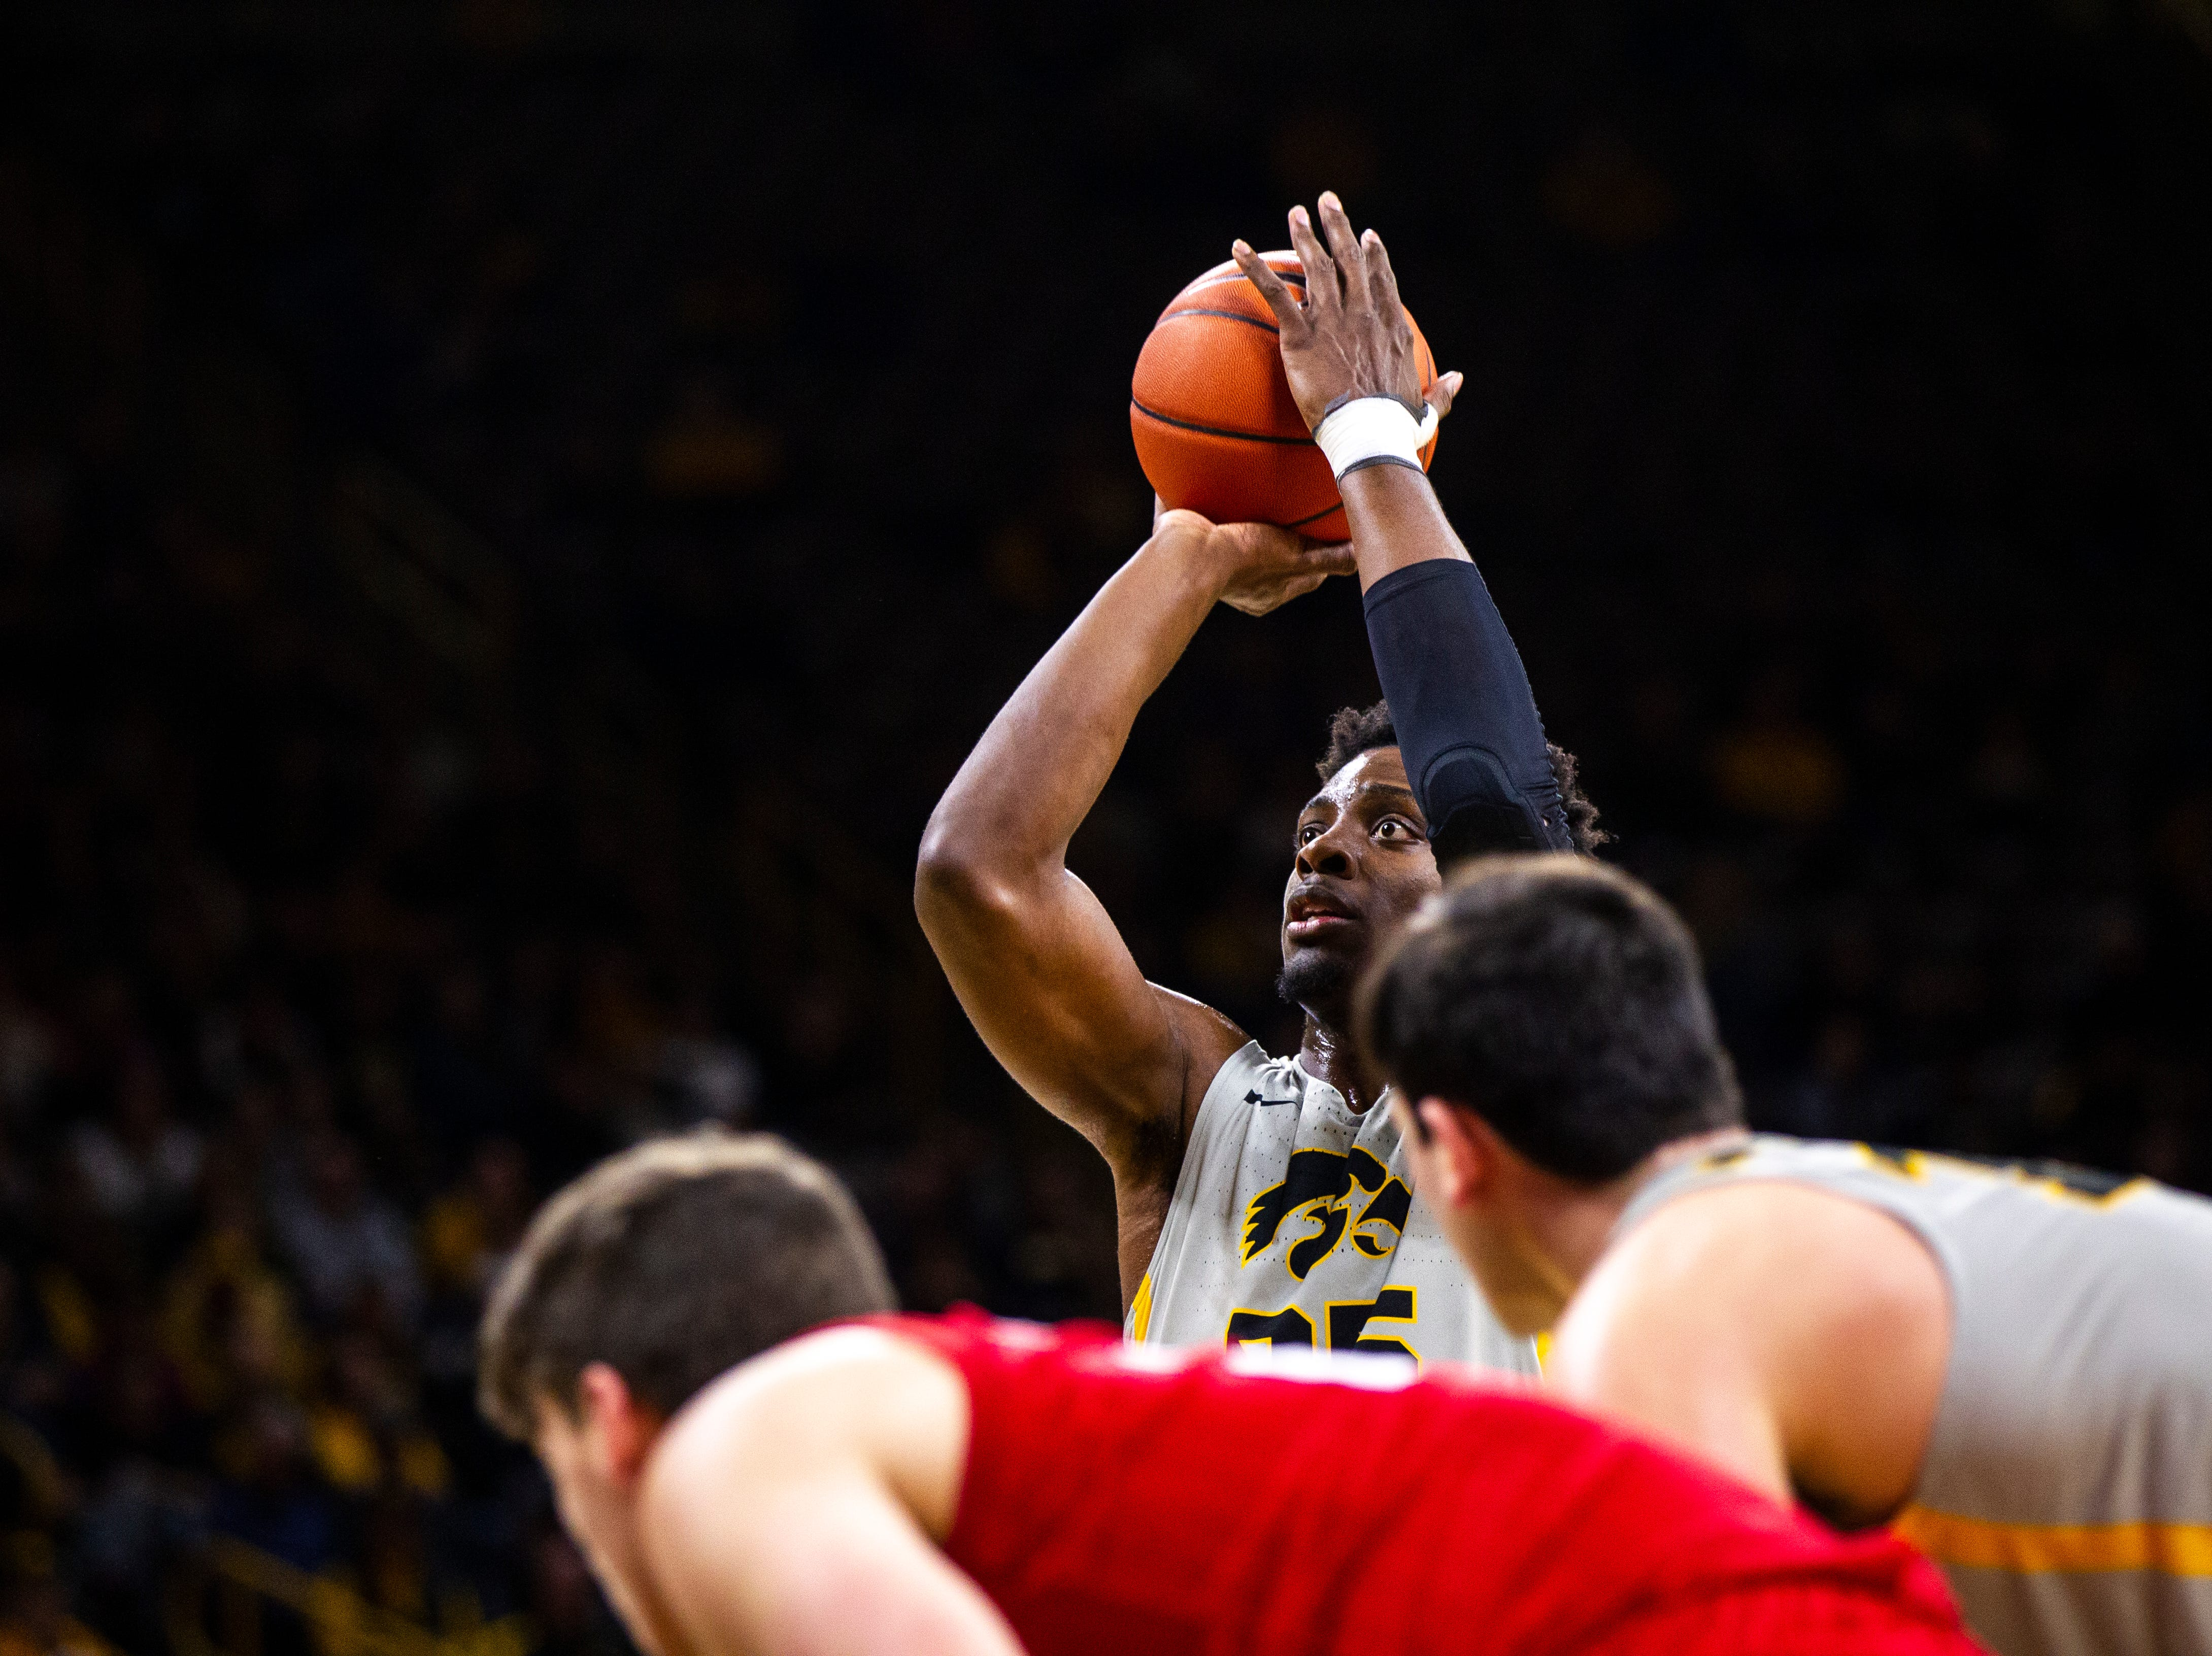 Iowa forward Tyler Cook (25) attempts a free-throw during a NCAA Big Ten Conference men's basketball game on Sunday, Jan. 6, 2019, at the Carver-Hawkeye Arena in Iowa City, Iowa.